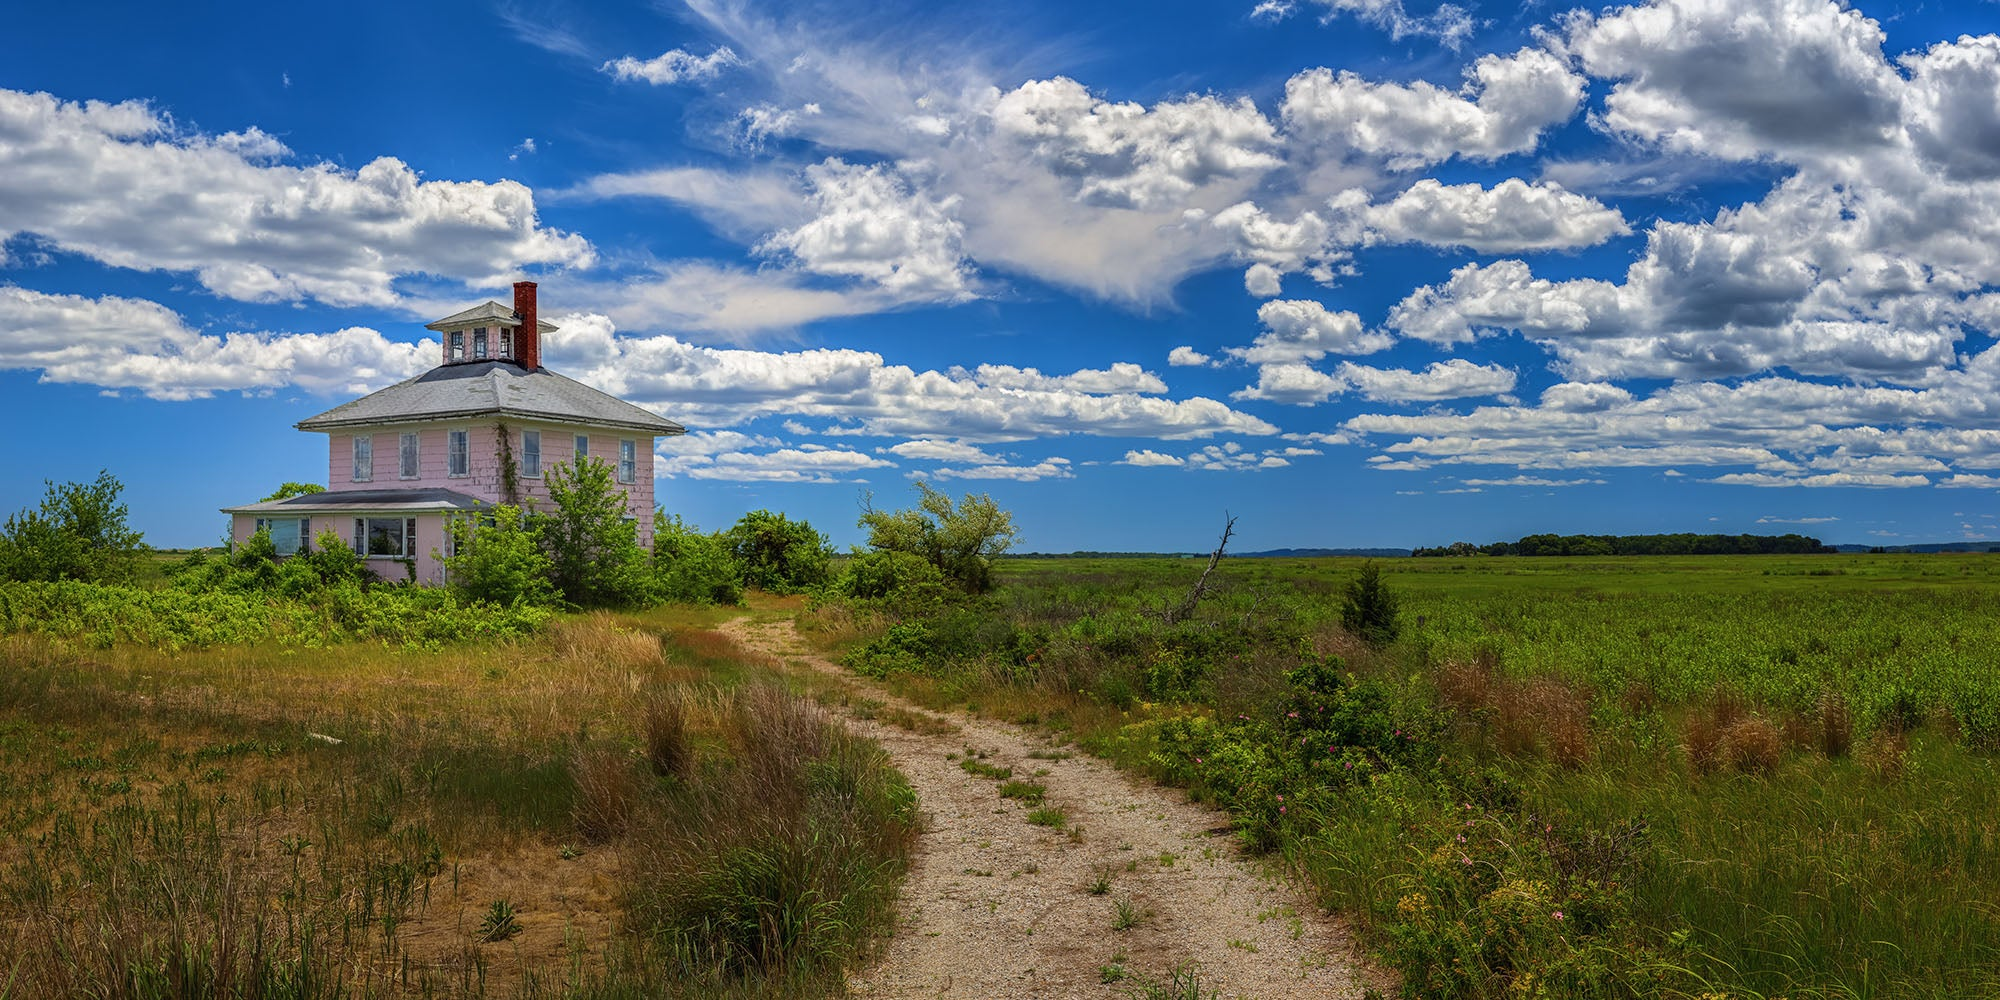 Landscape wall art photography of the iconic Plum Island pink house on a sunny blue sky day